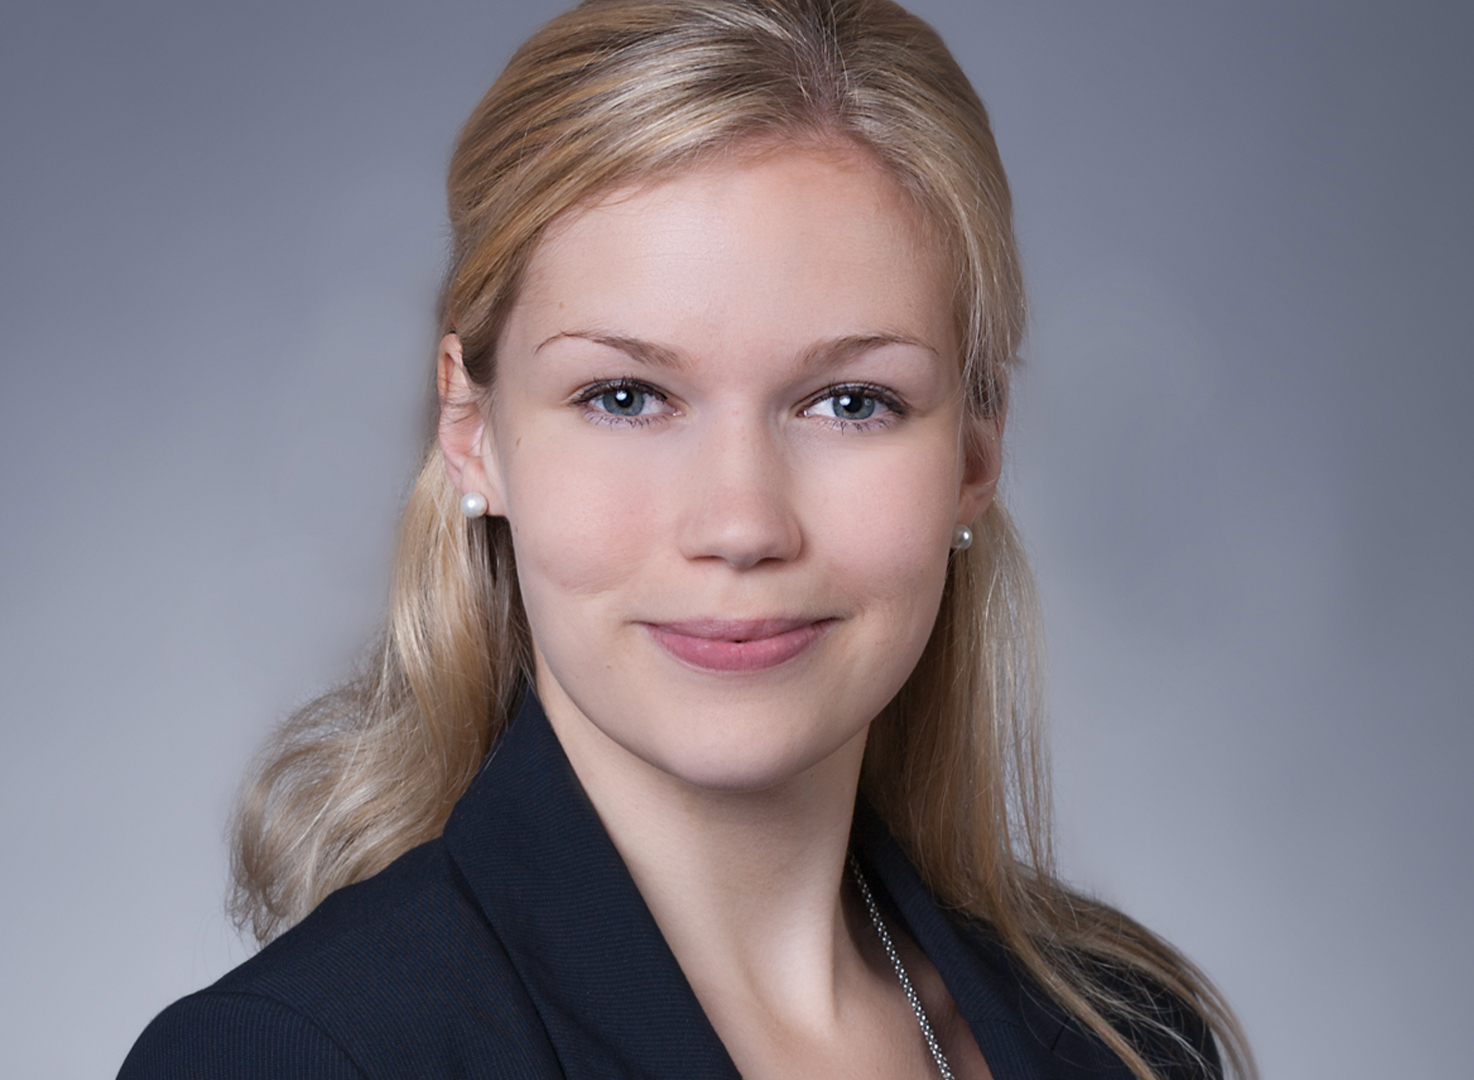 Andrea Vennemann, project manager in supply chain management at thyssenkrupp Schulte,